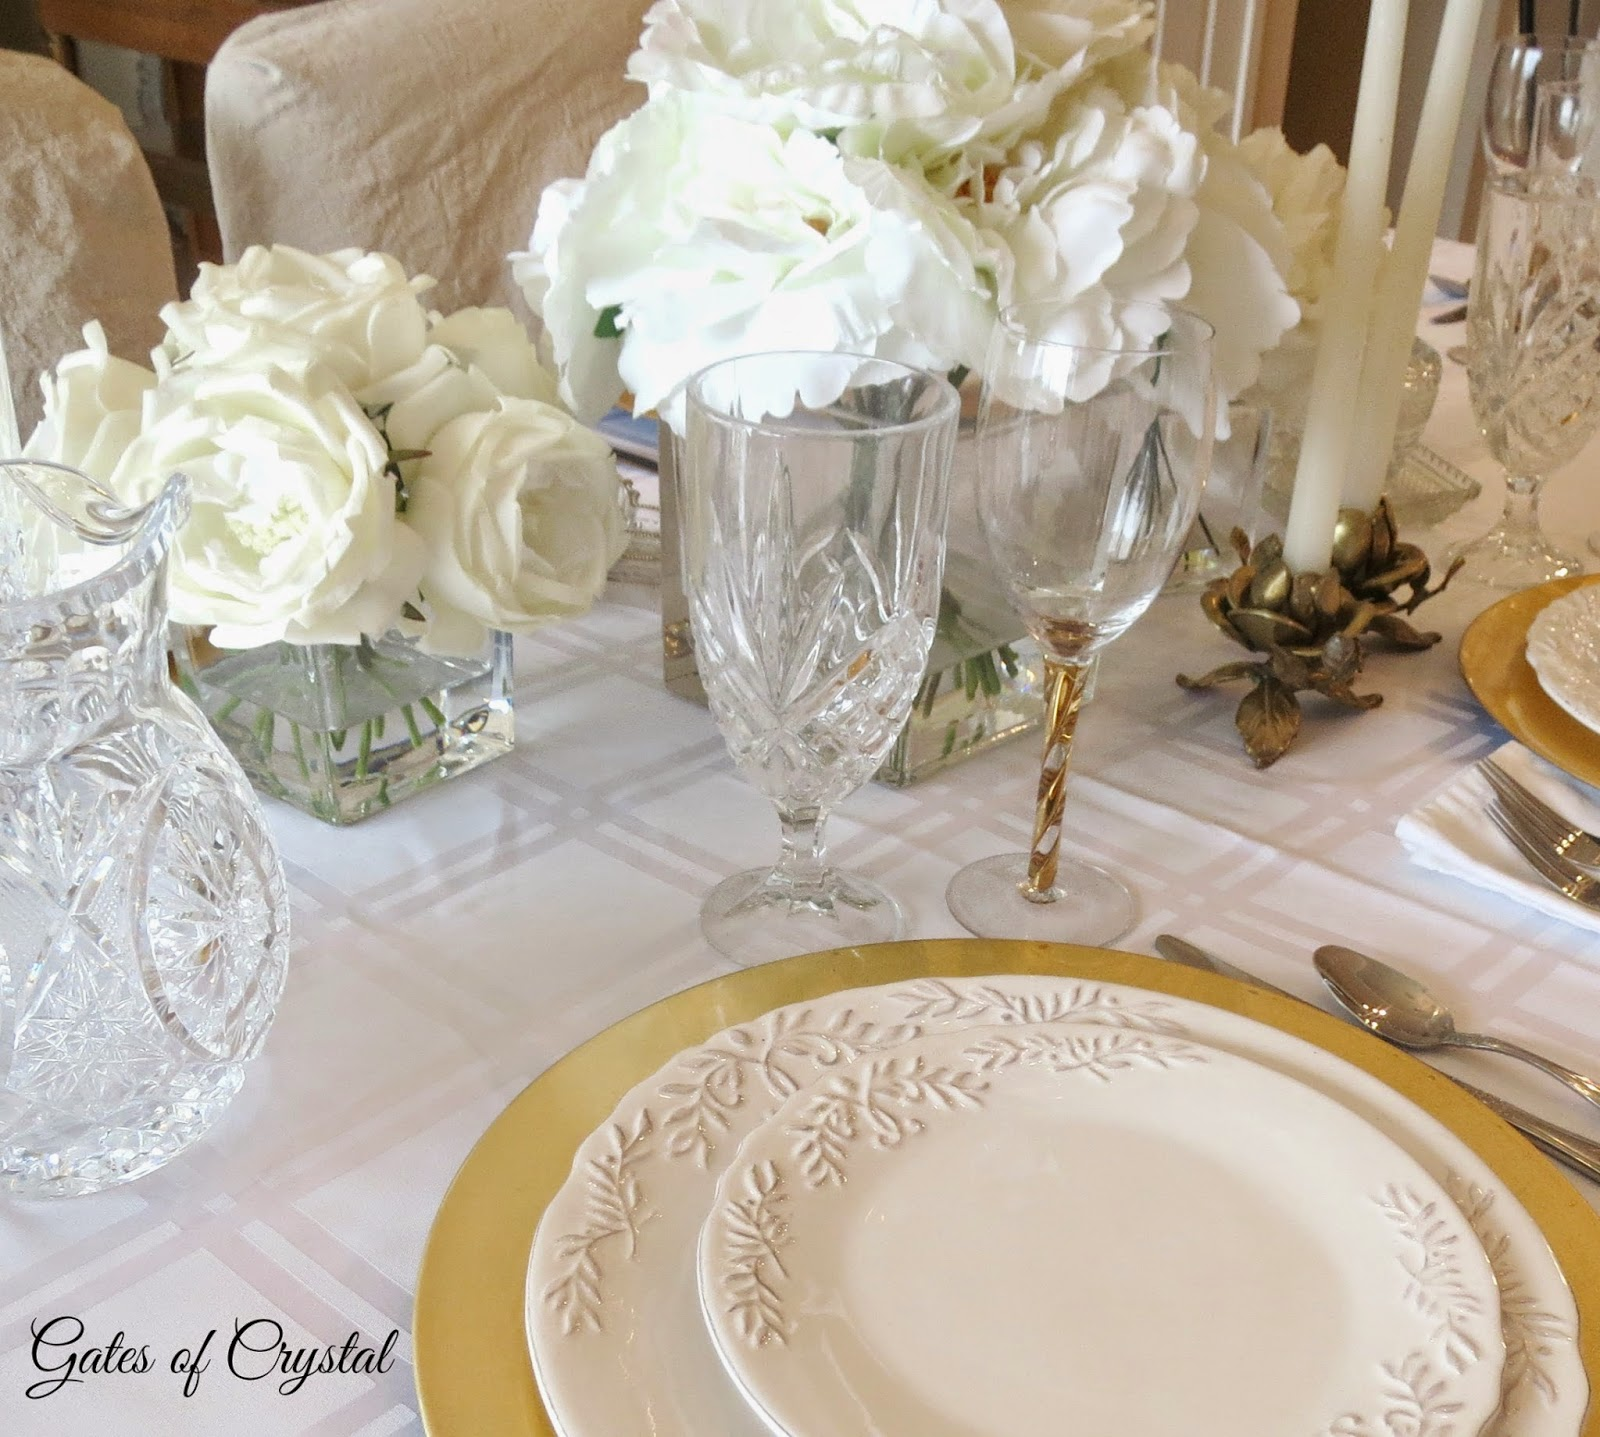 This Placesetting Is To Die Gold Charger Champagne: Gates Of Crystal: White And Gold Table Setting